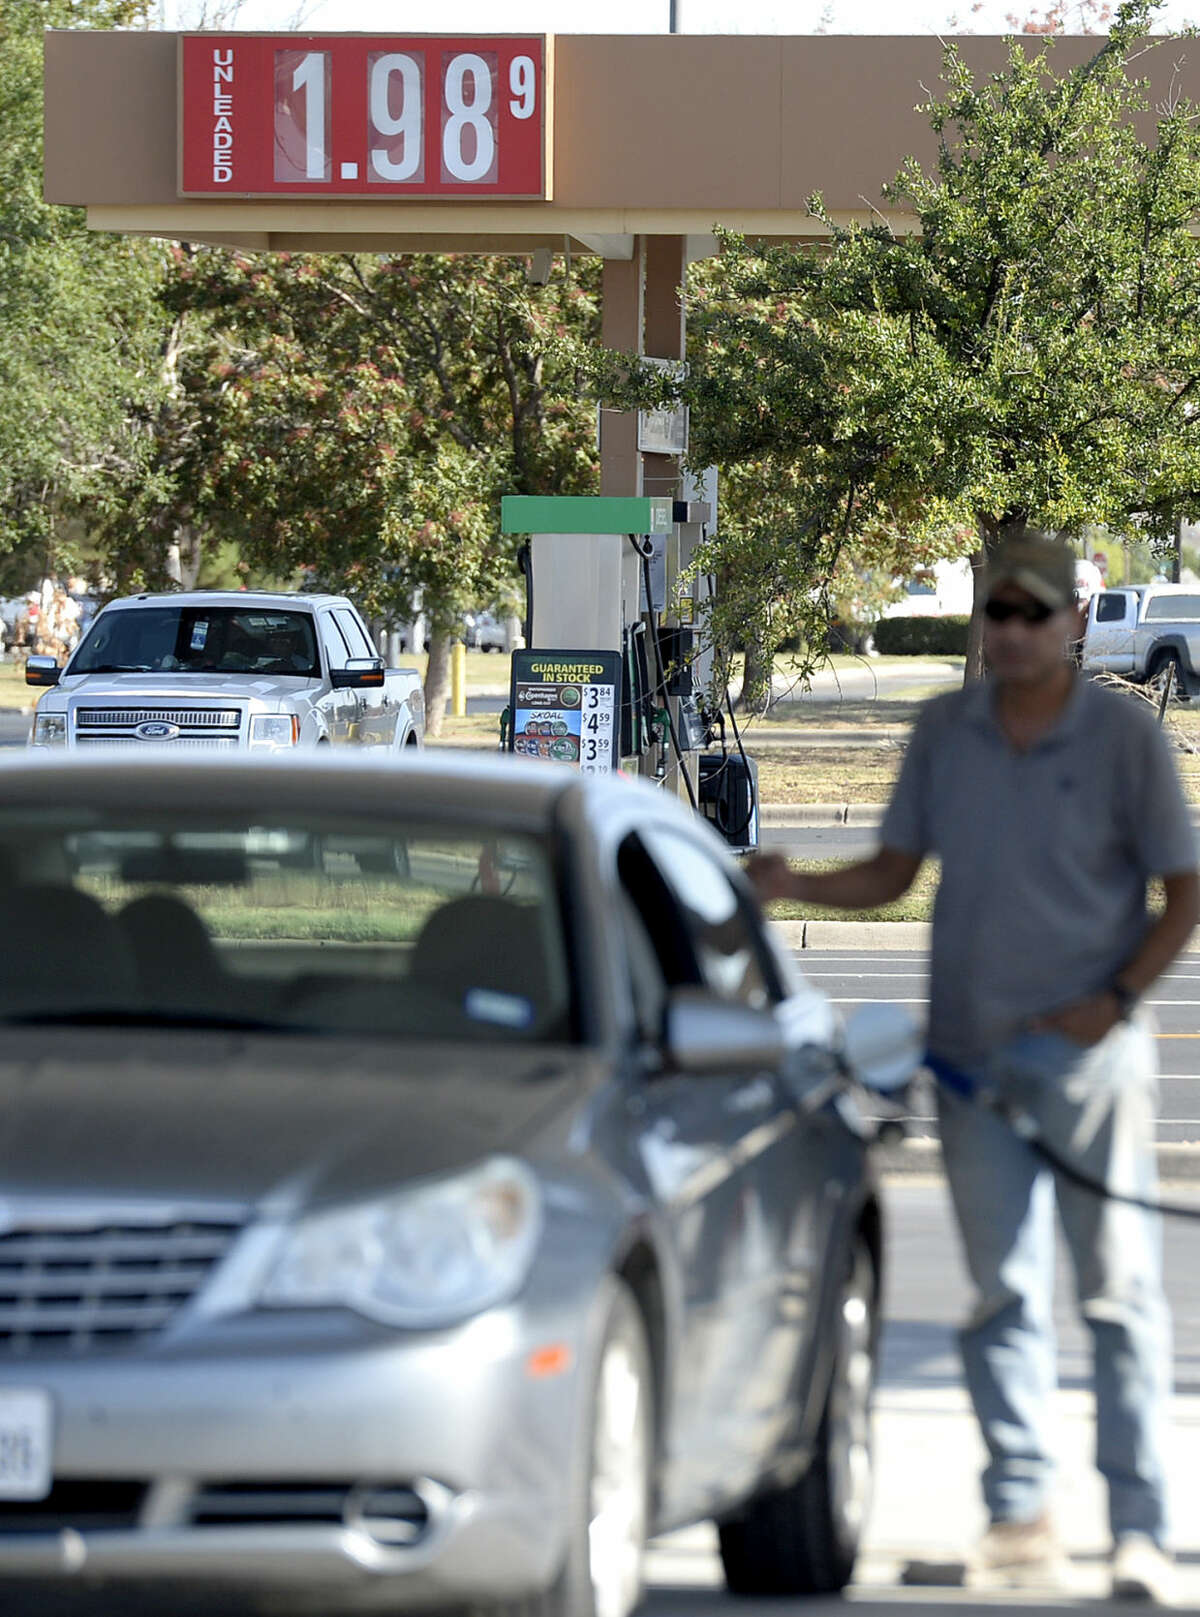 The price for a gallon of gas dropped to less than $2.00 as seen at the Stripes and Murphy USA gas stations near the intersection of Briarwood and Midland Dr. on Thursday, Sept. 3, 2015. James Durbin/Reporter-Telegram